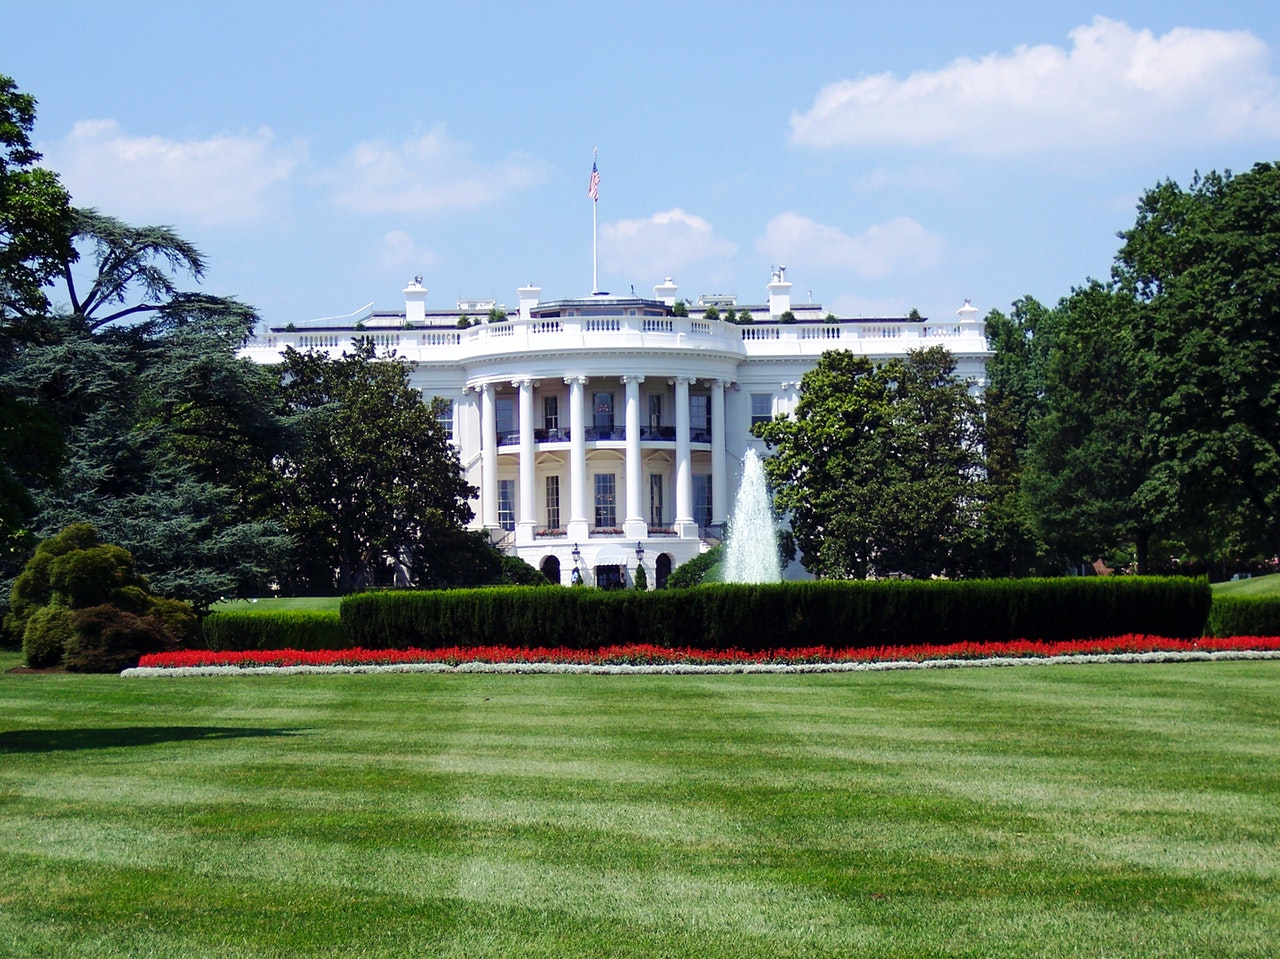 Rural broadband, data protection on agenda for new White House tech office